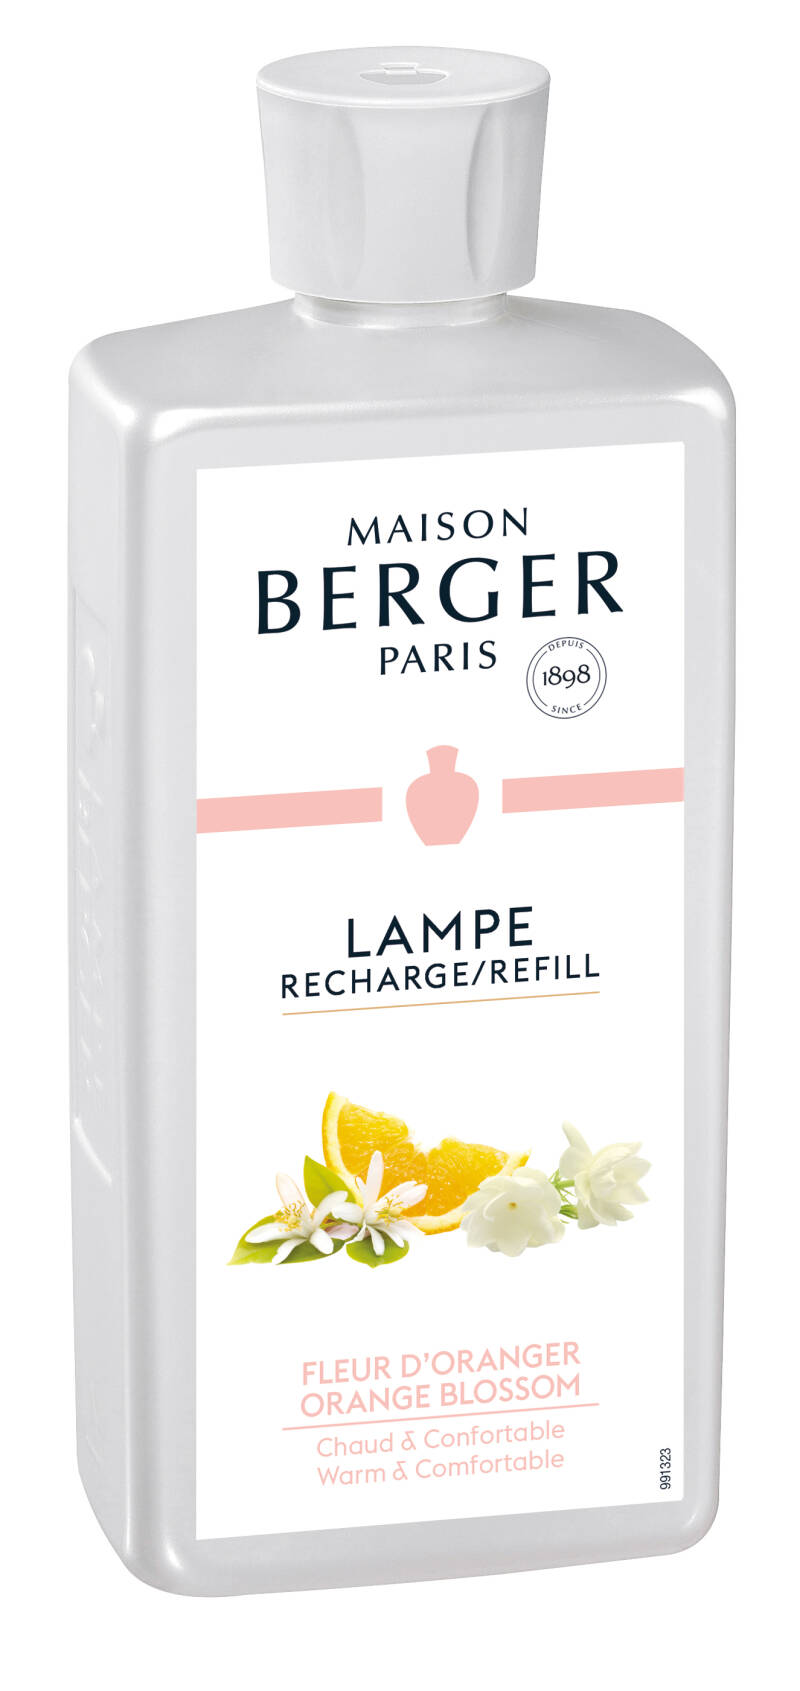 Lampe Berger navulling Orange Blossom 500 ml 115050